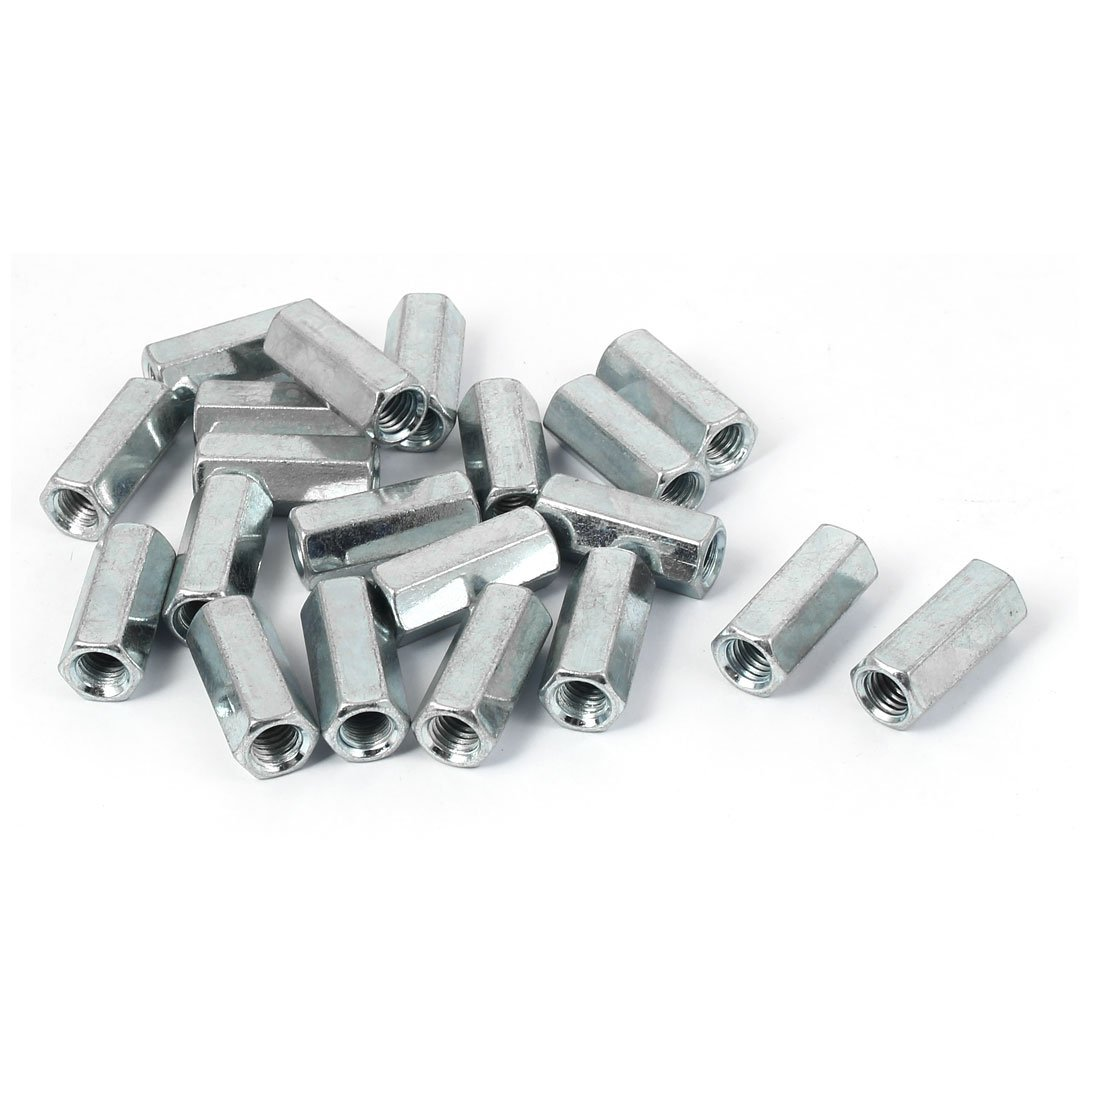 Uxcell a16041400ux0821 Rod Coupling Nut M8 x 12Mm x 30Mm Metal Hex Rod Coupling Connector Nuts Silver Tone 20 Pcs